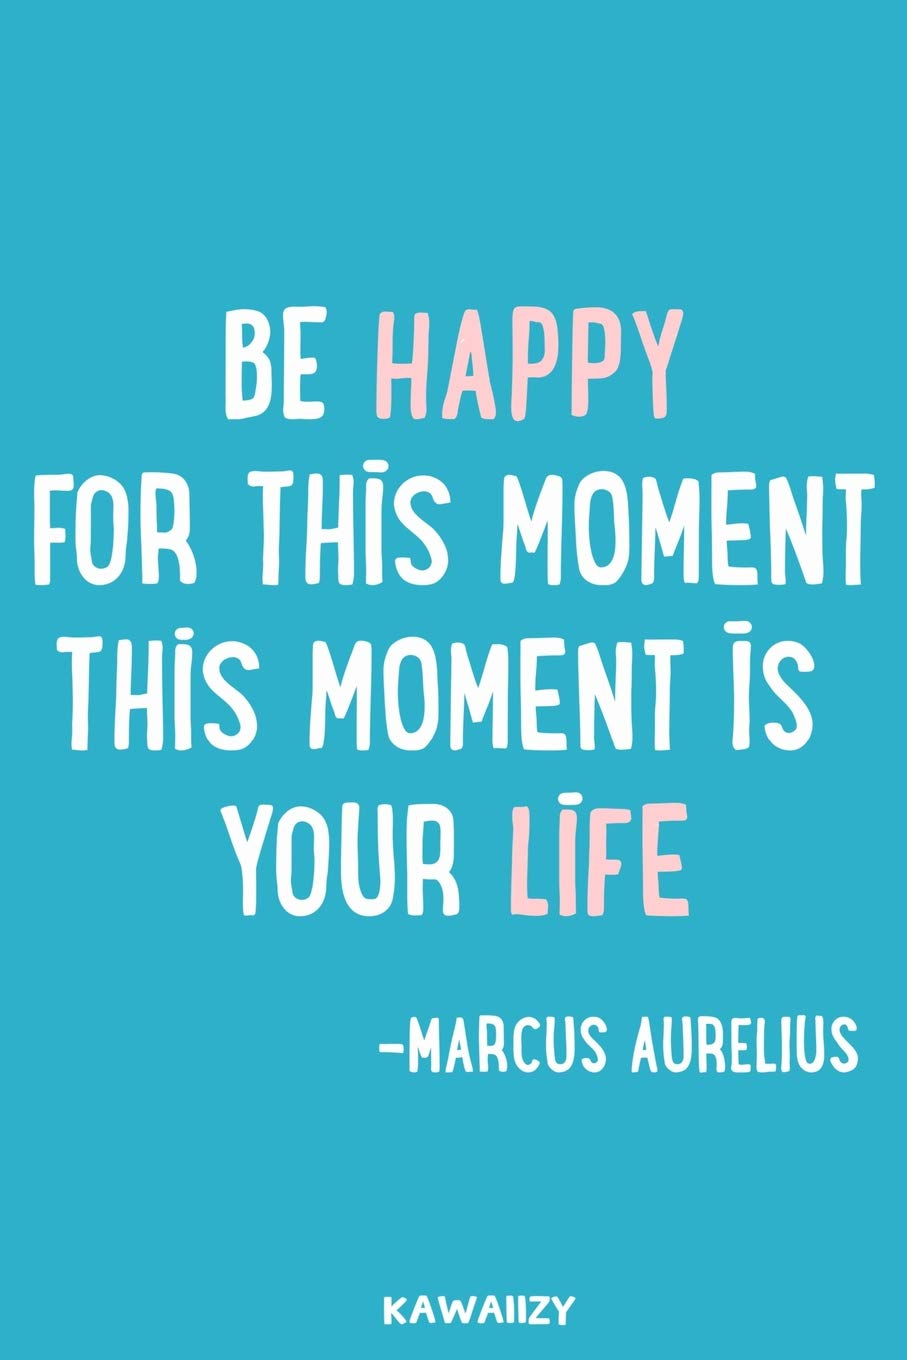 Amazon.com: Be Happy For this Moment This Moment Is Your Life ...